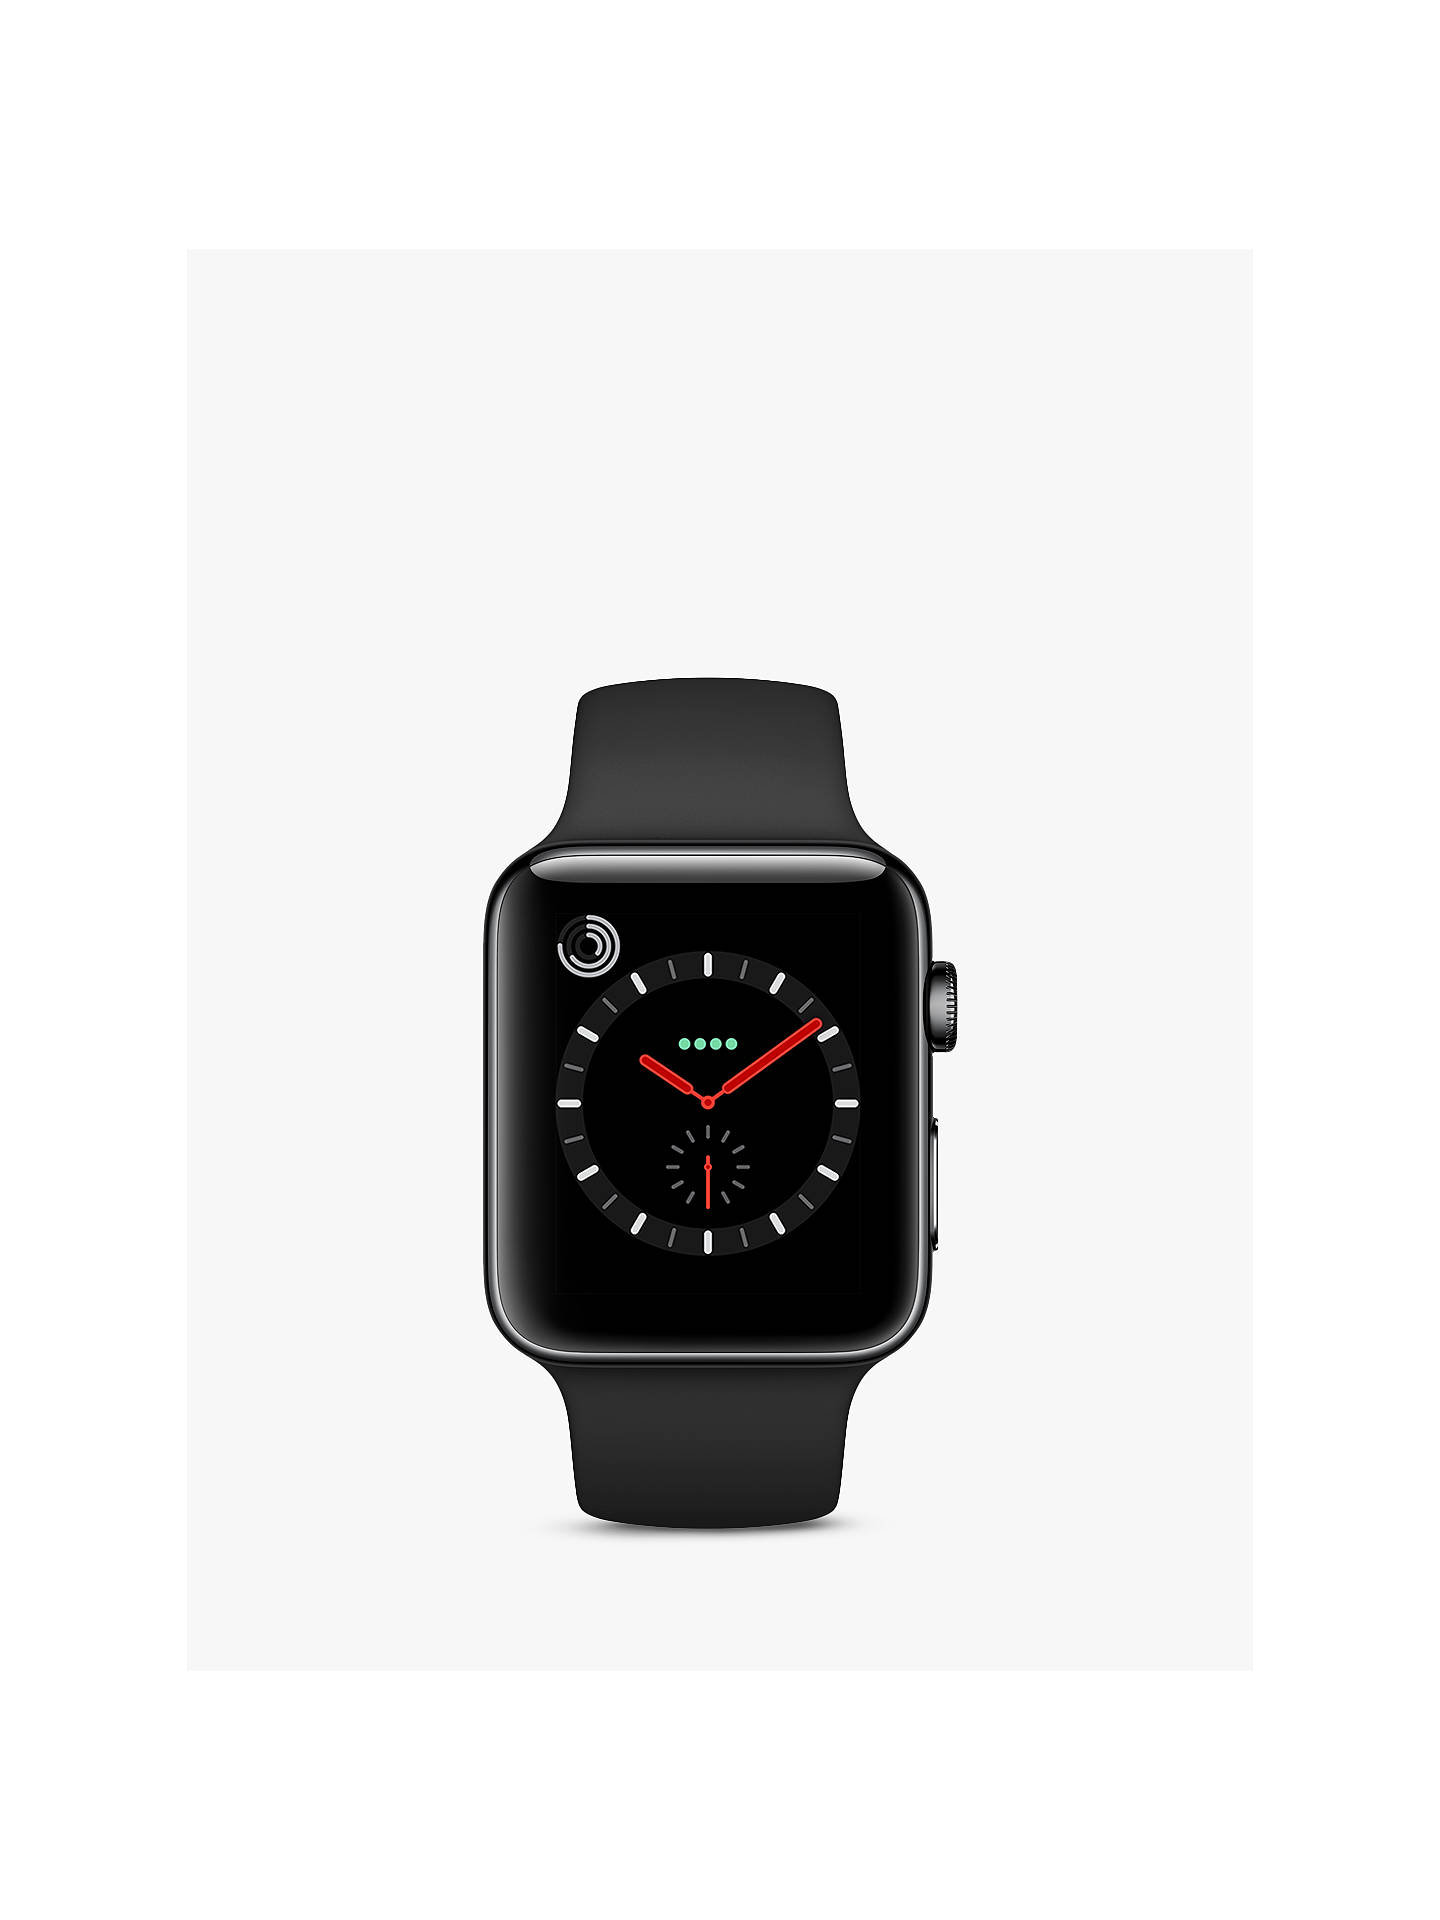 BuyApple Watch Series 3, GPS and Cellular, 42mm Space Black Stainless Steel Case with Sport Band, Black Online at johnlewis.com